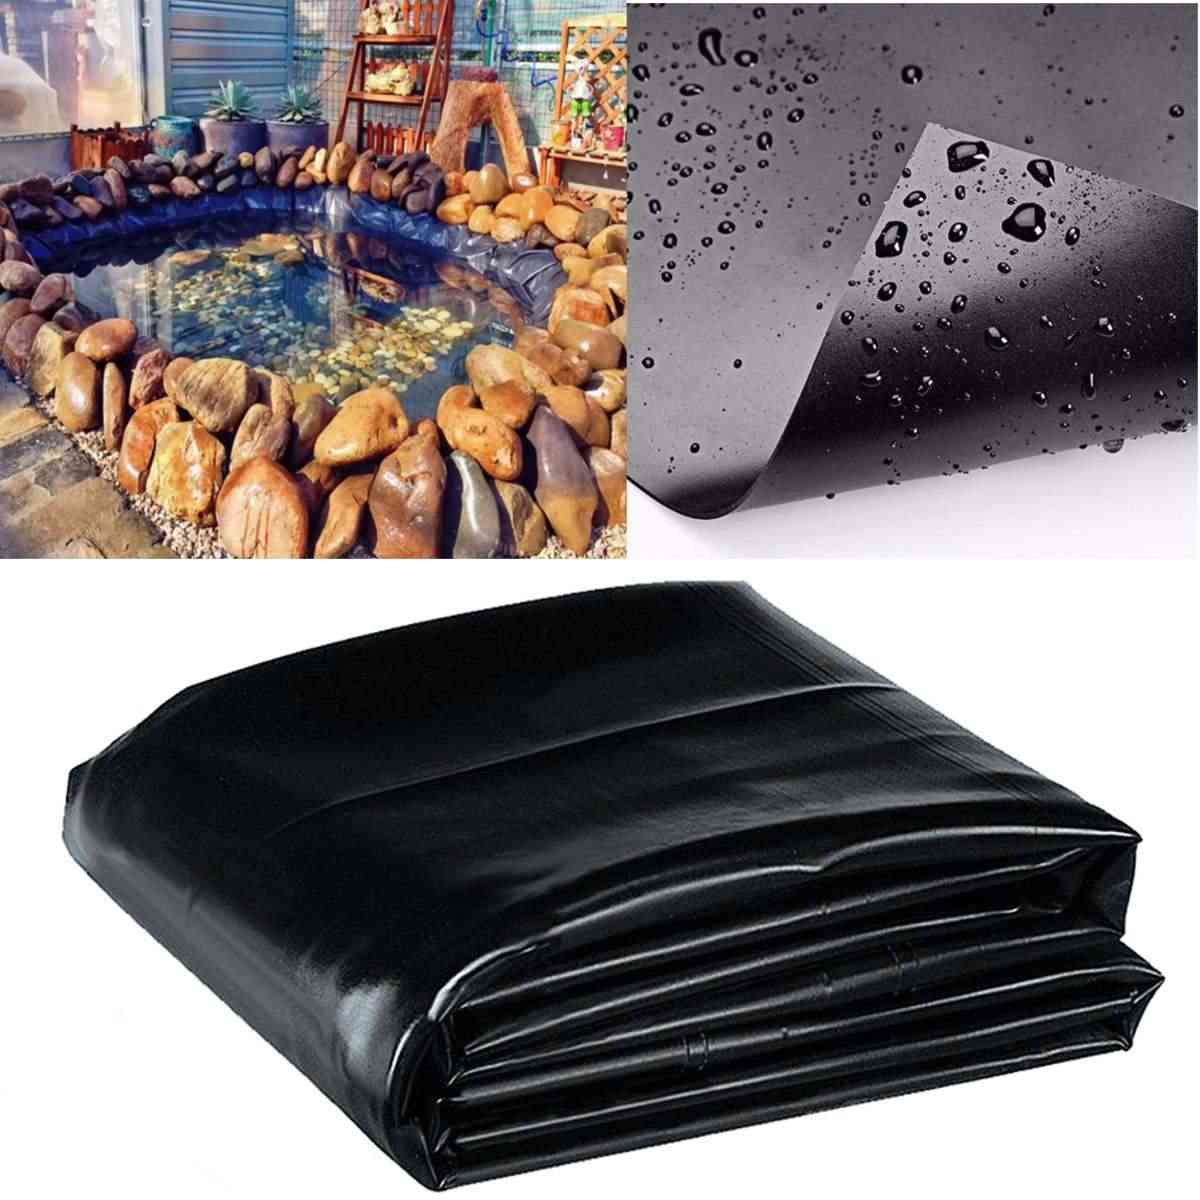 Fish Pond Liner Cloth, Home Garden Pool Reinforced, Hdpe Heavy Landscaping Pond, Waterproof